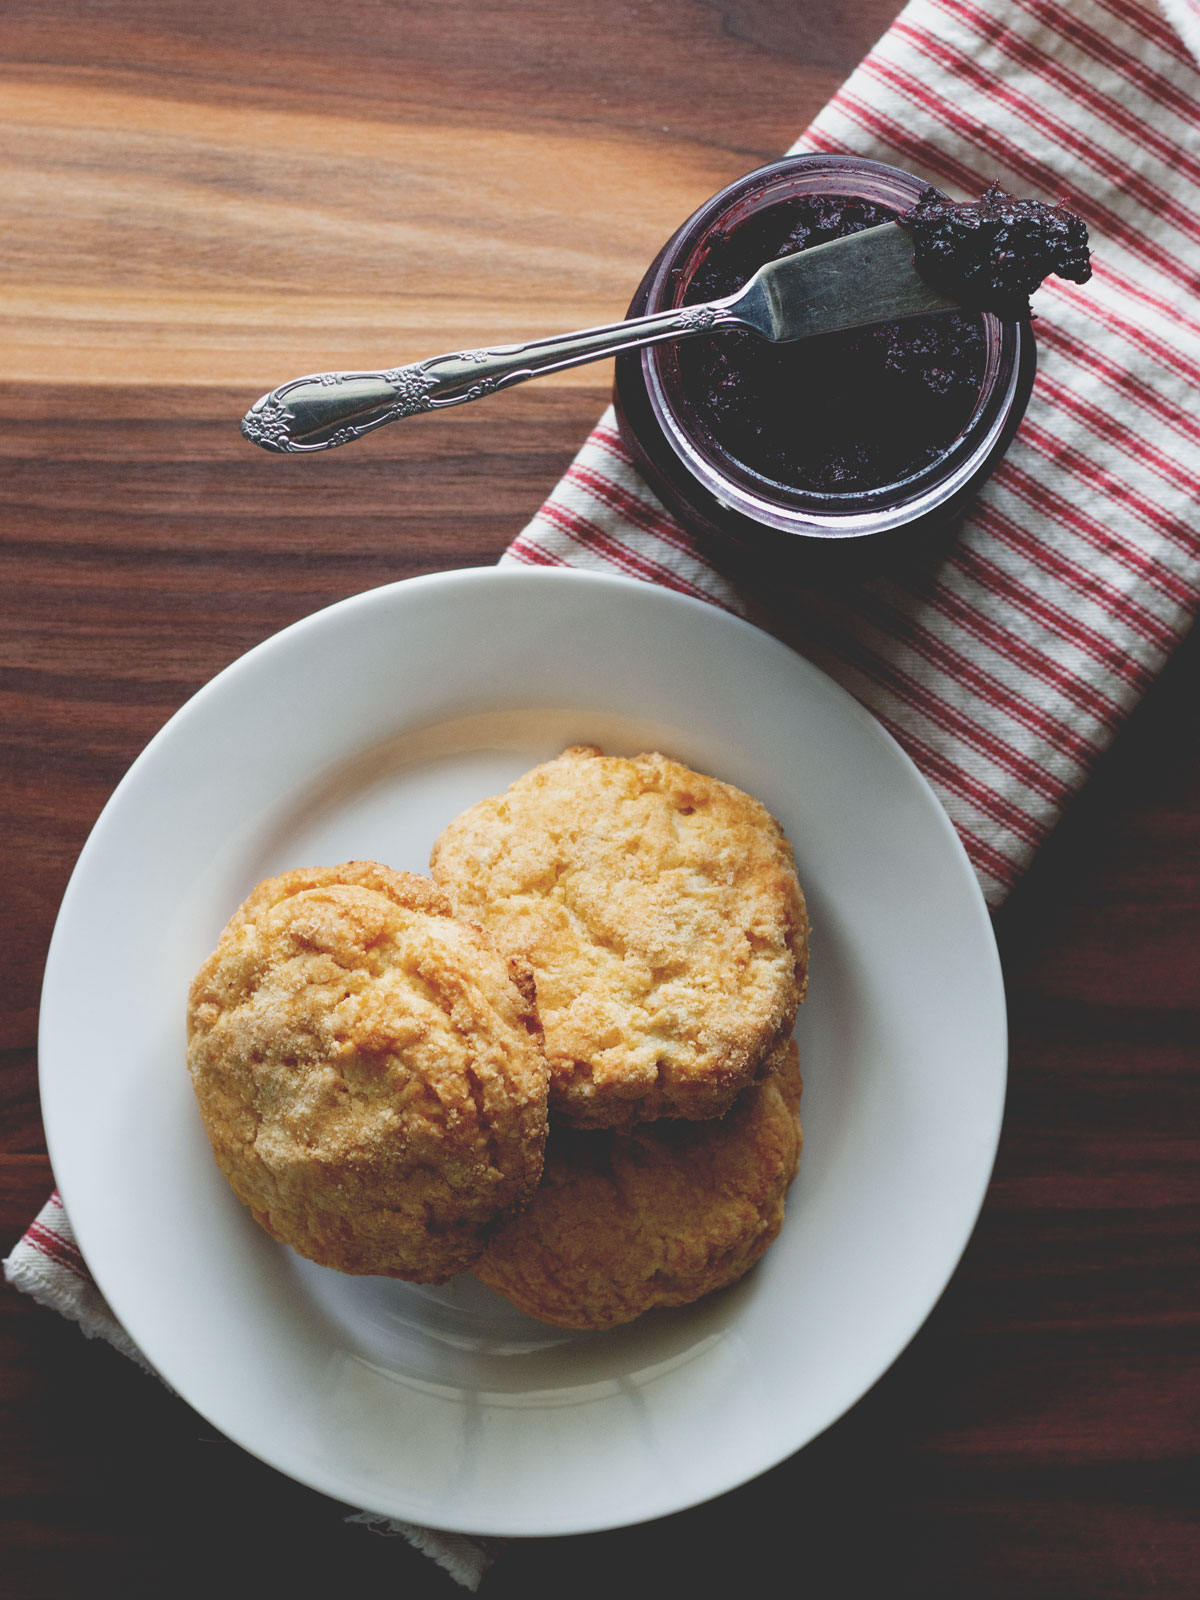 Small Batch of Blackberry Jam | Wholesome Skillet